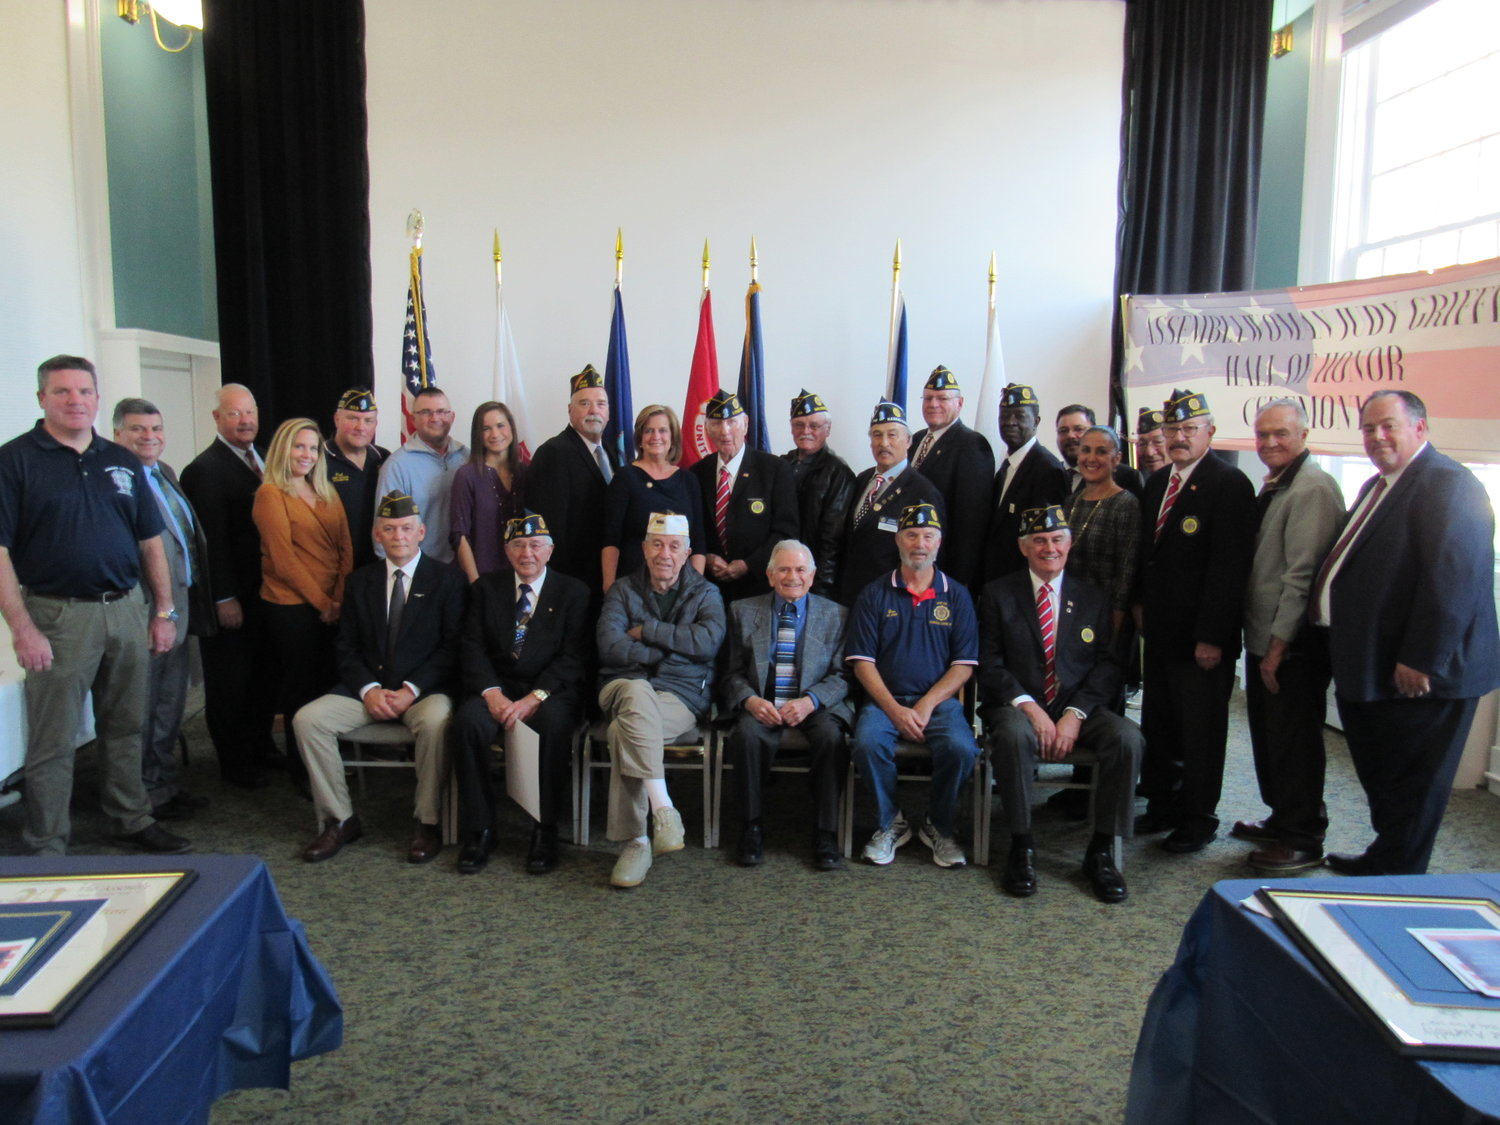 Lynbrook and East Rockaway veterans were among 11 people honored at a Hall of Honor Ceremony at the Lynbrook Public Library on Nov. 2.